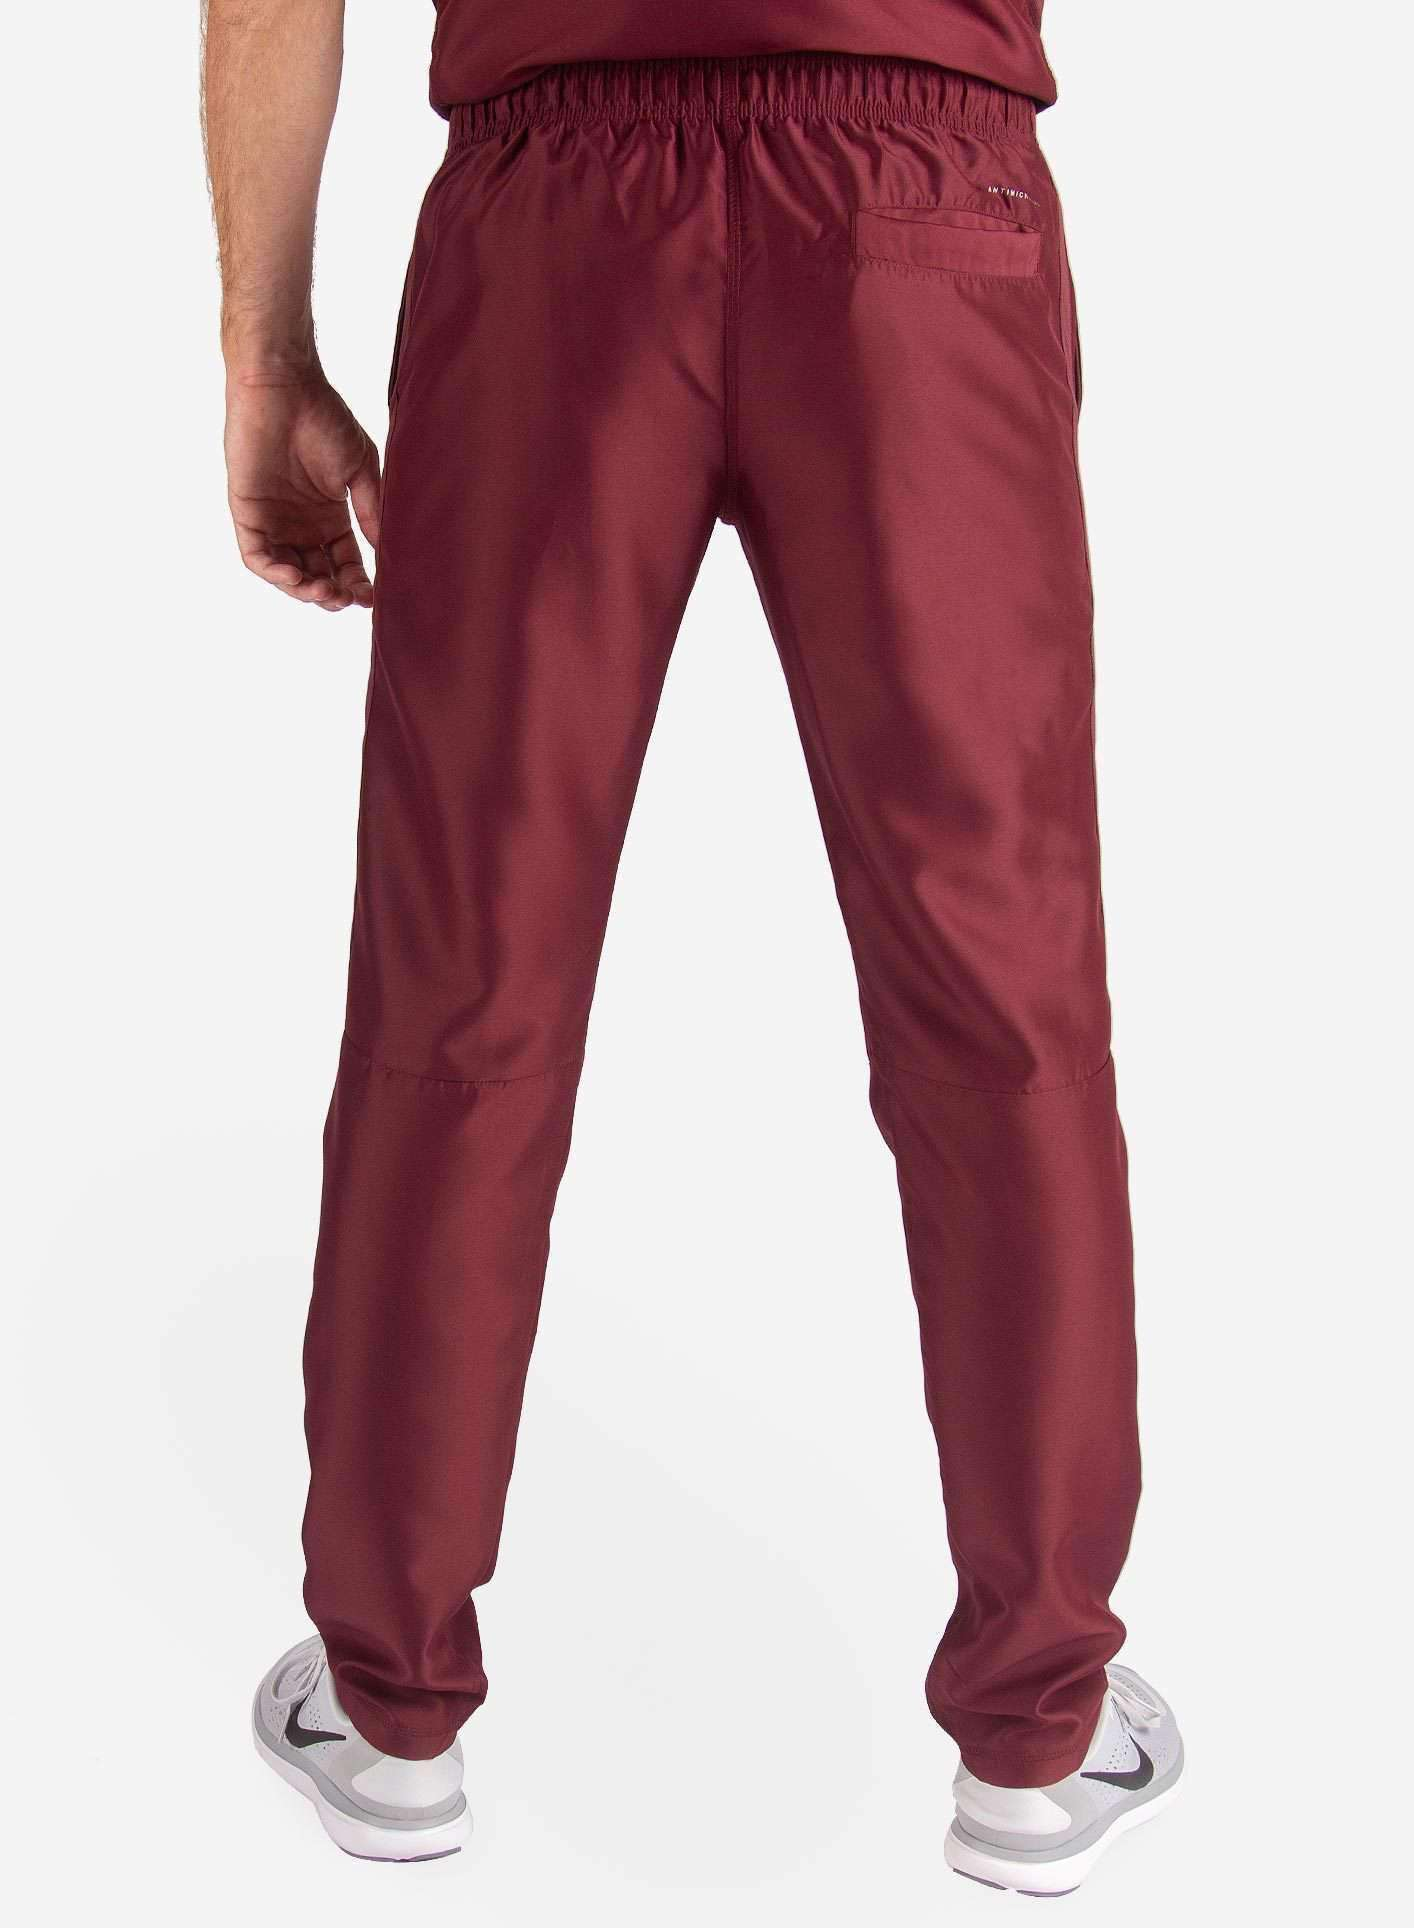 Men's Slim Fit Scrub Pants in Bold Burgundy Back